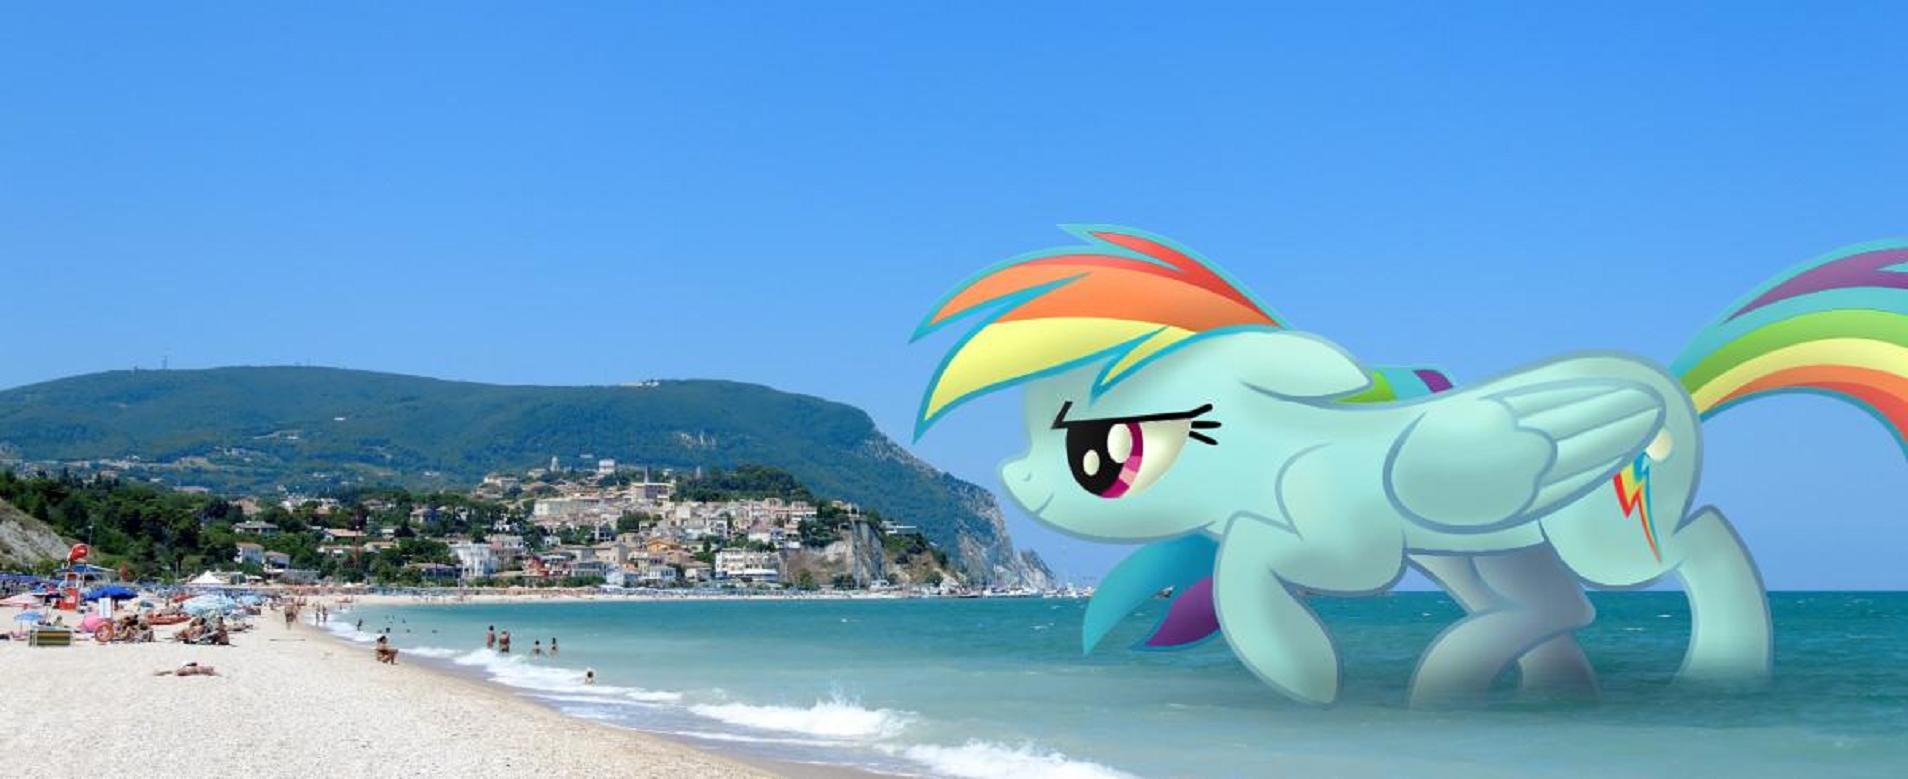 WV: Rainbow Shark Beach by darkoverlords on DeviantArt